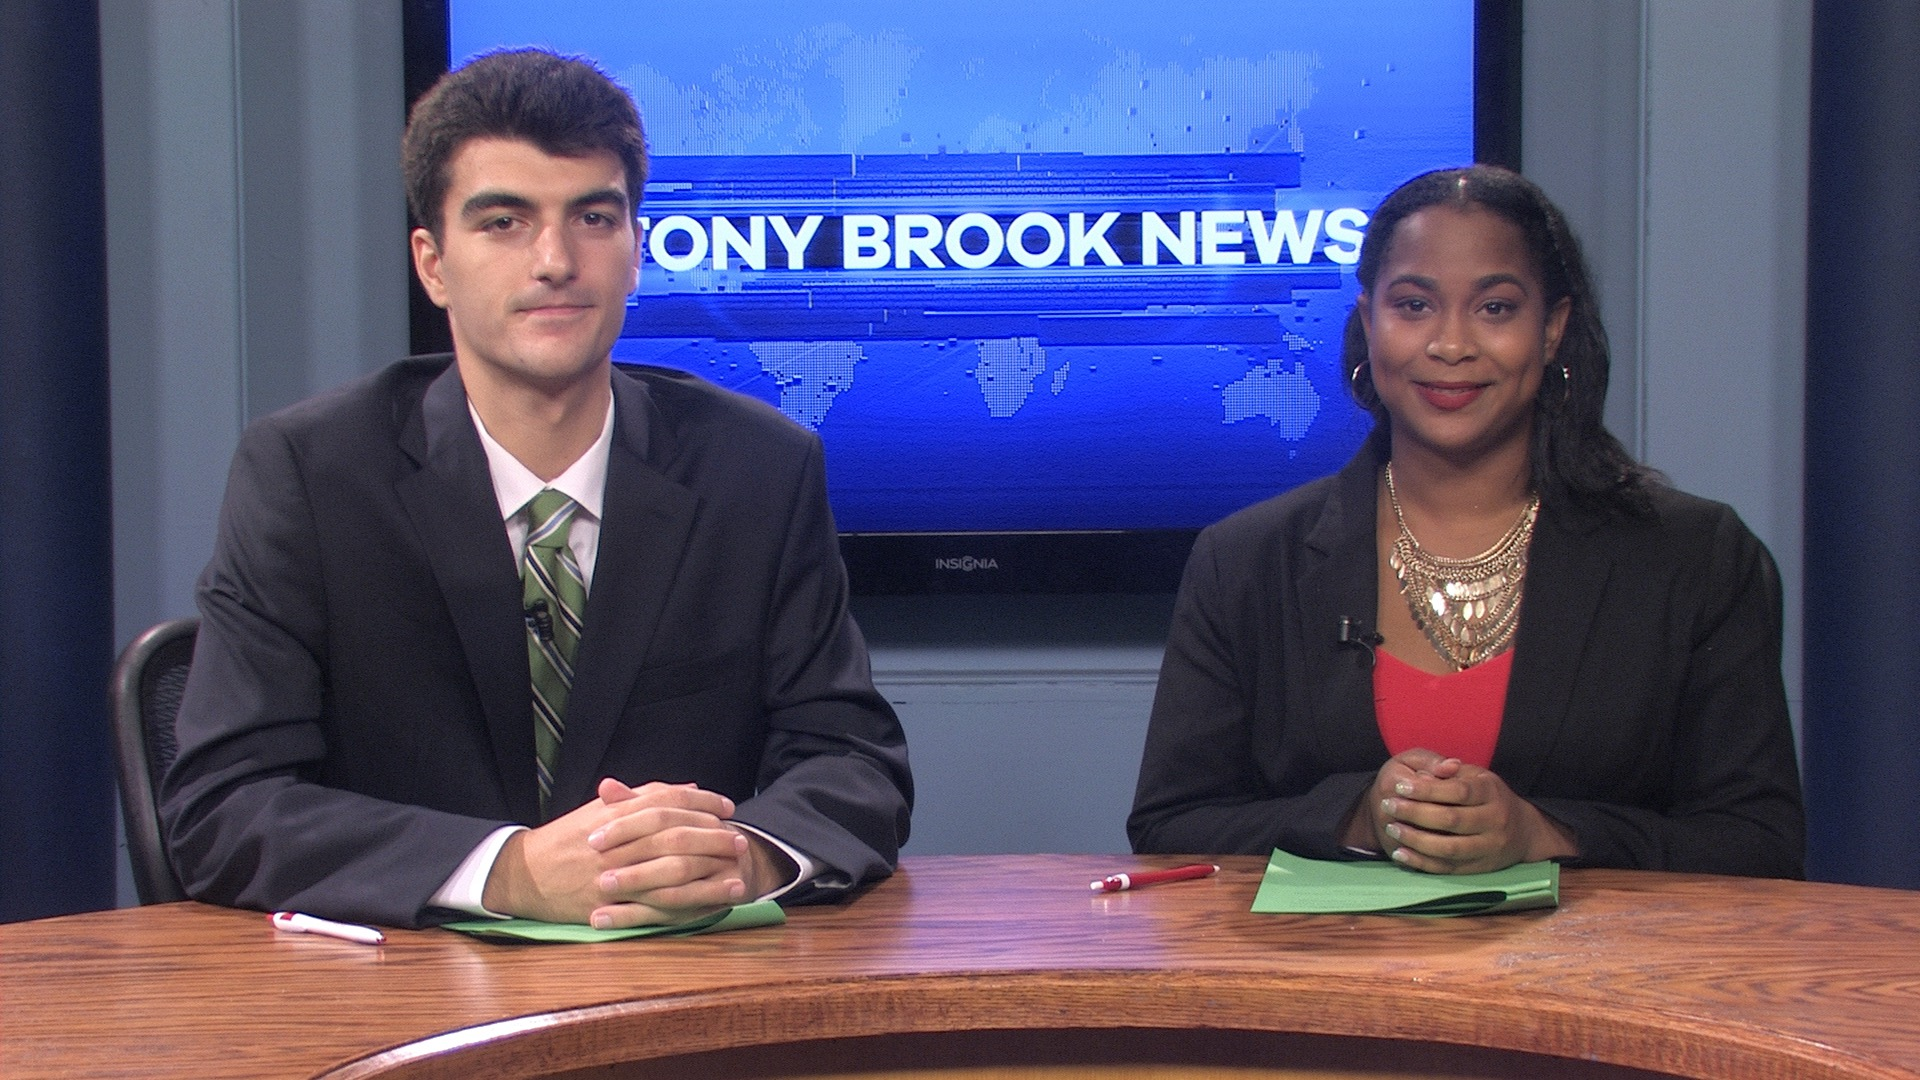 Stony Brook News – October 9, 2017